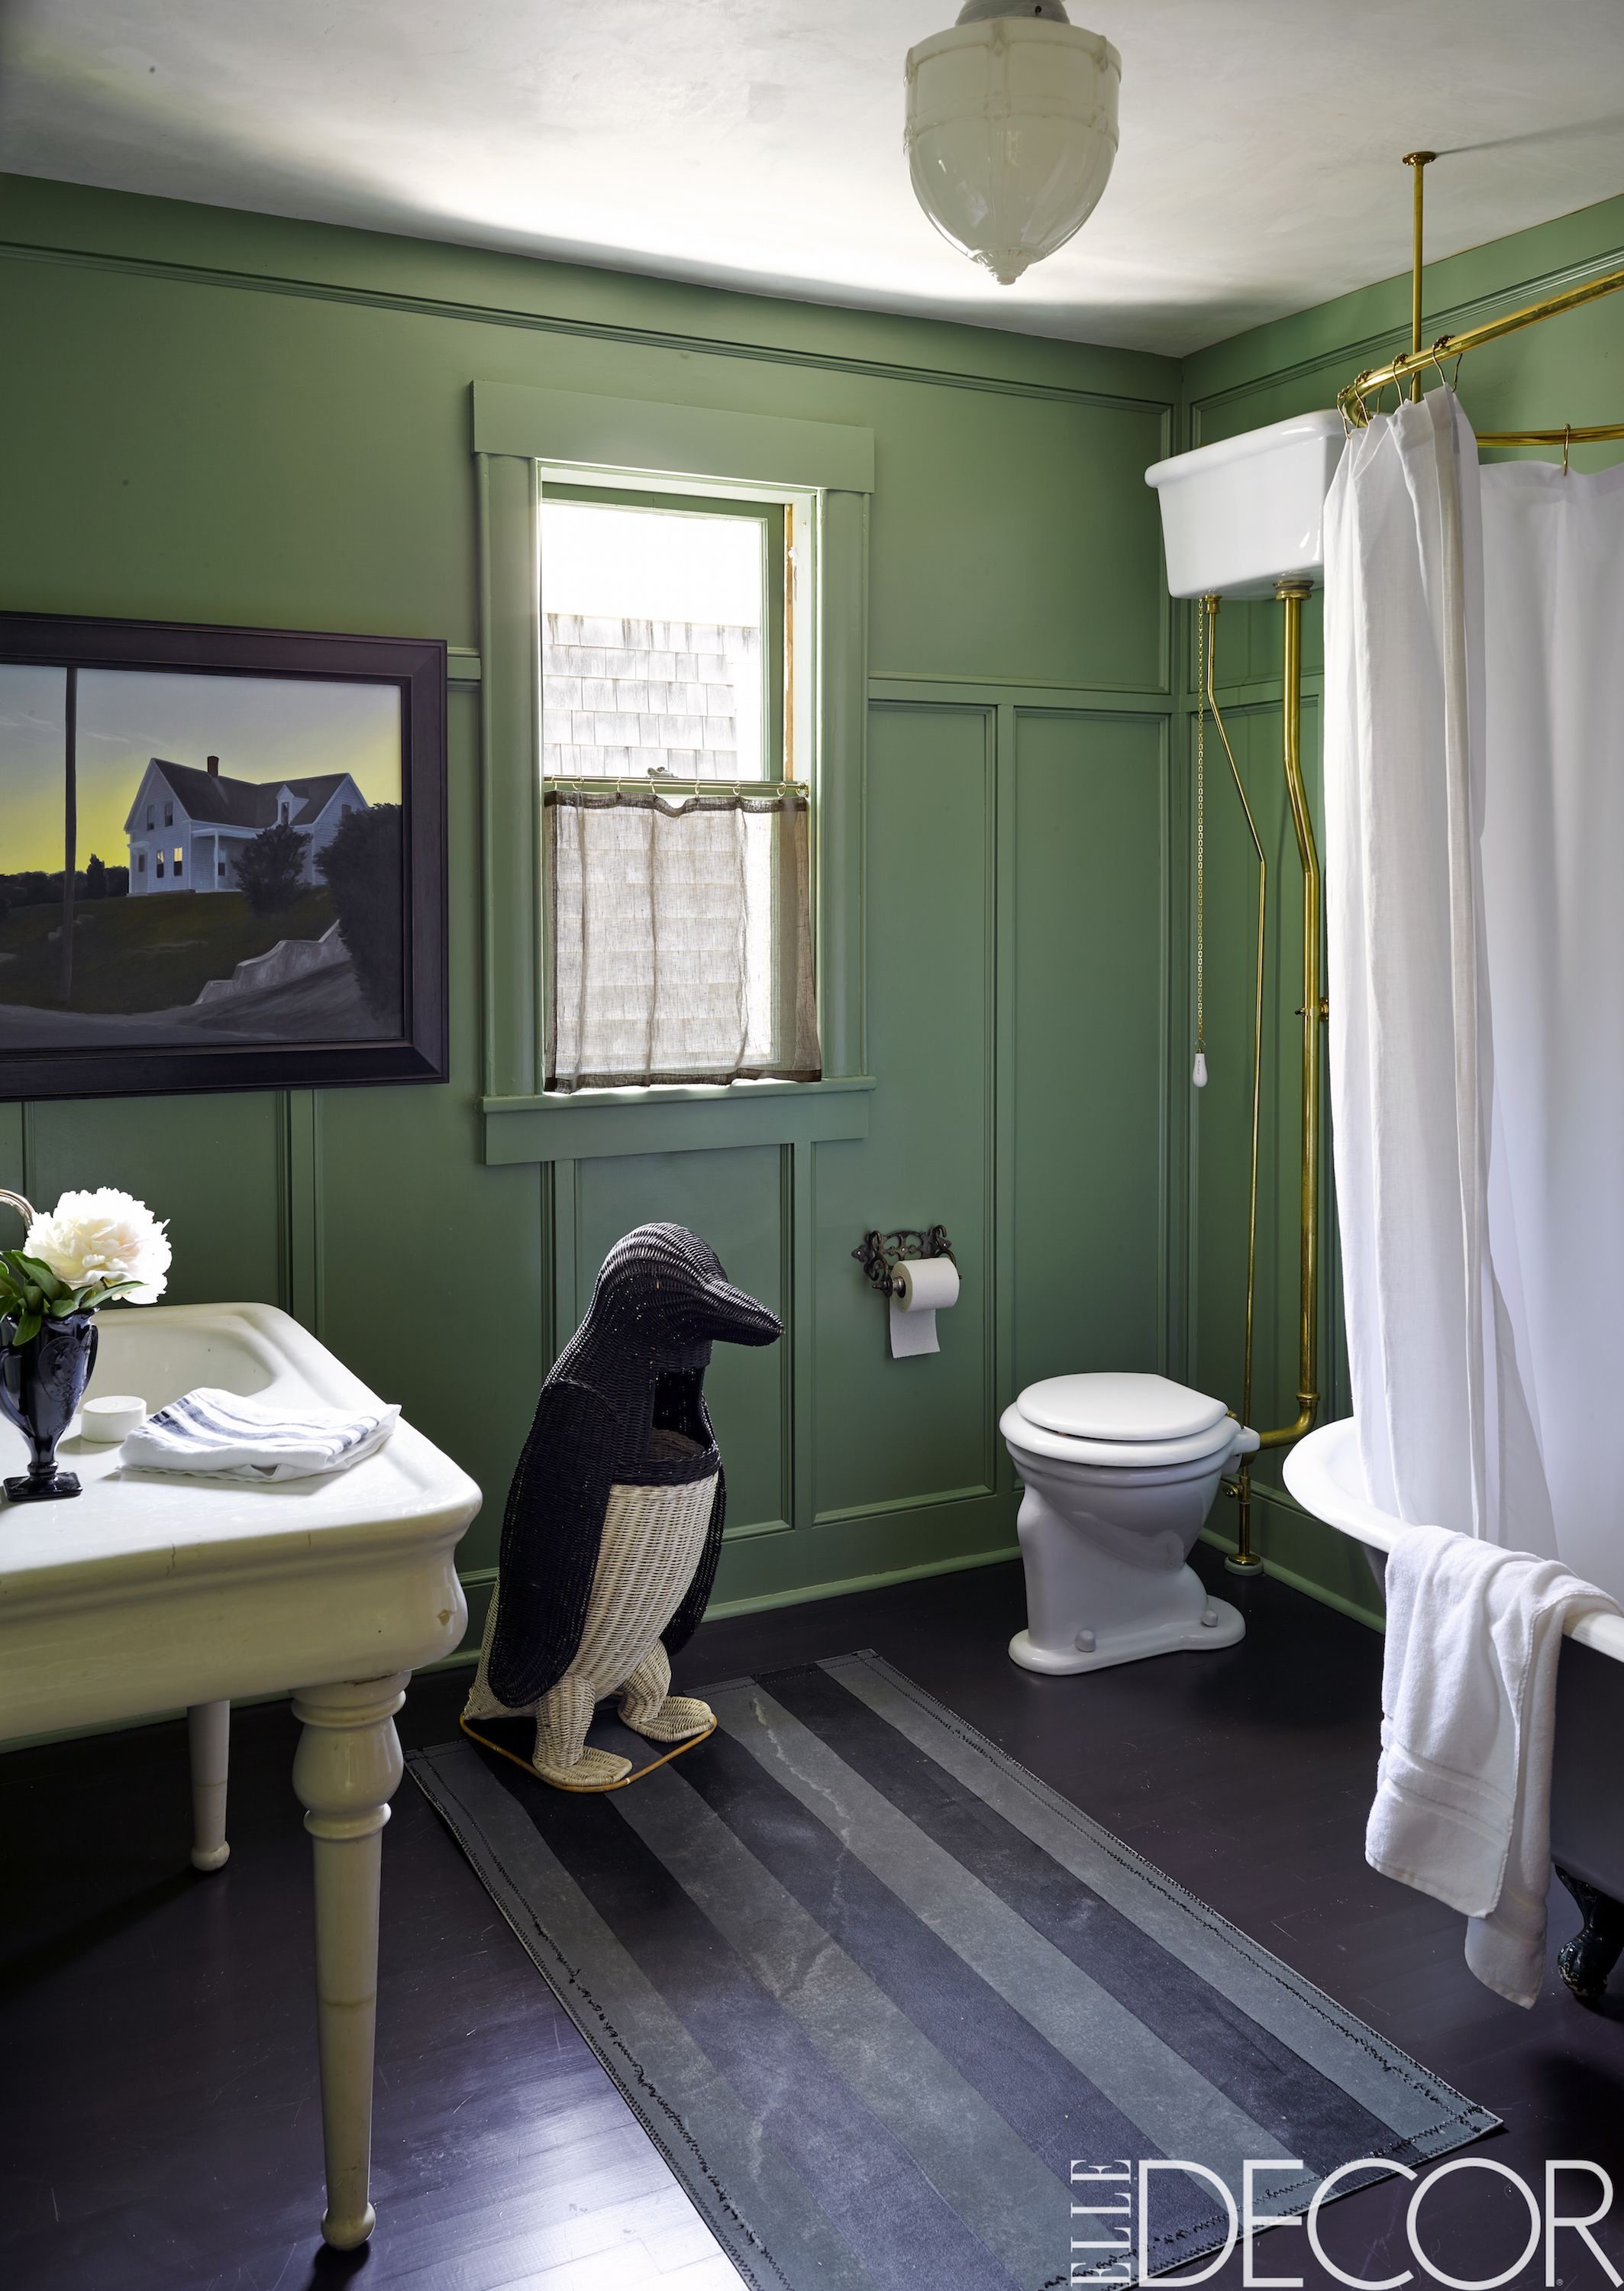 Bathroom painting ideas green - Bathroom Painting Ideas Green 23